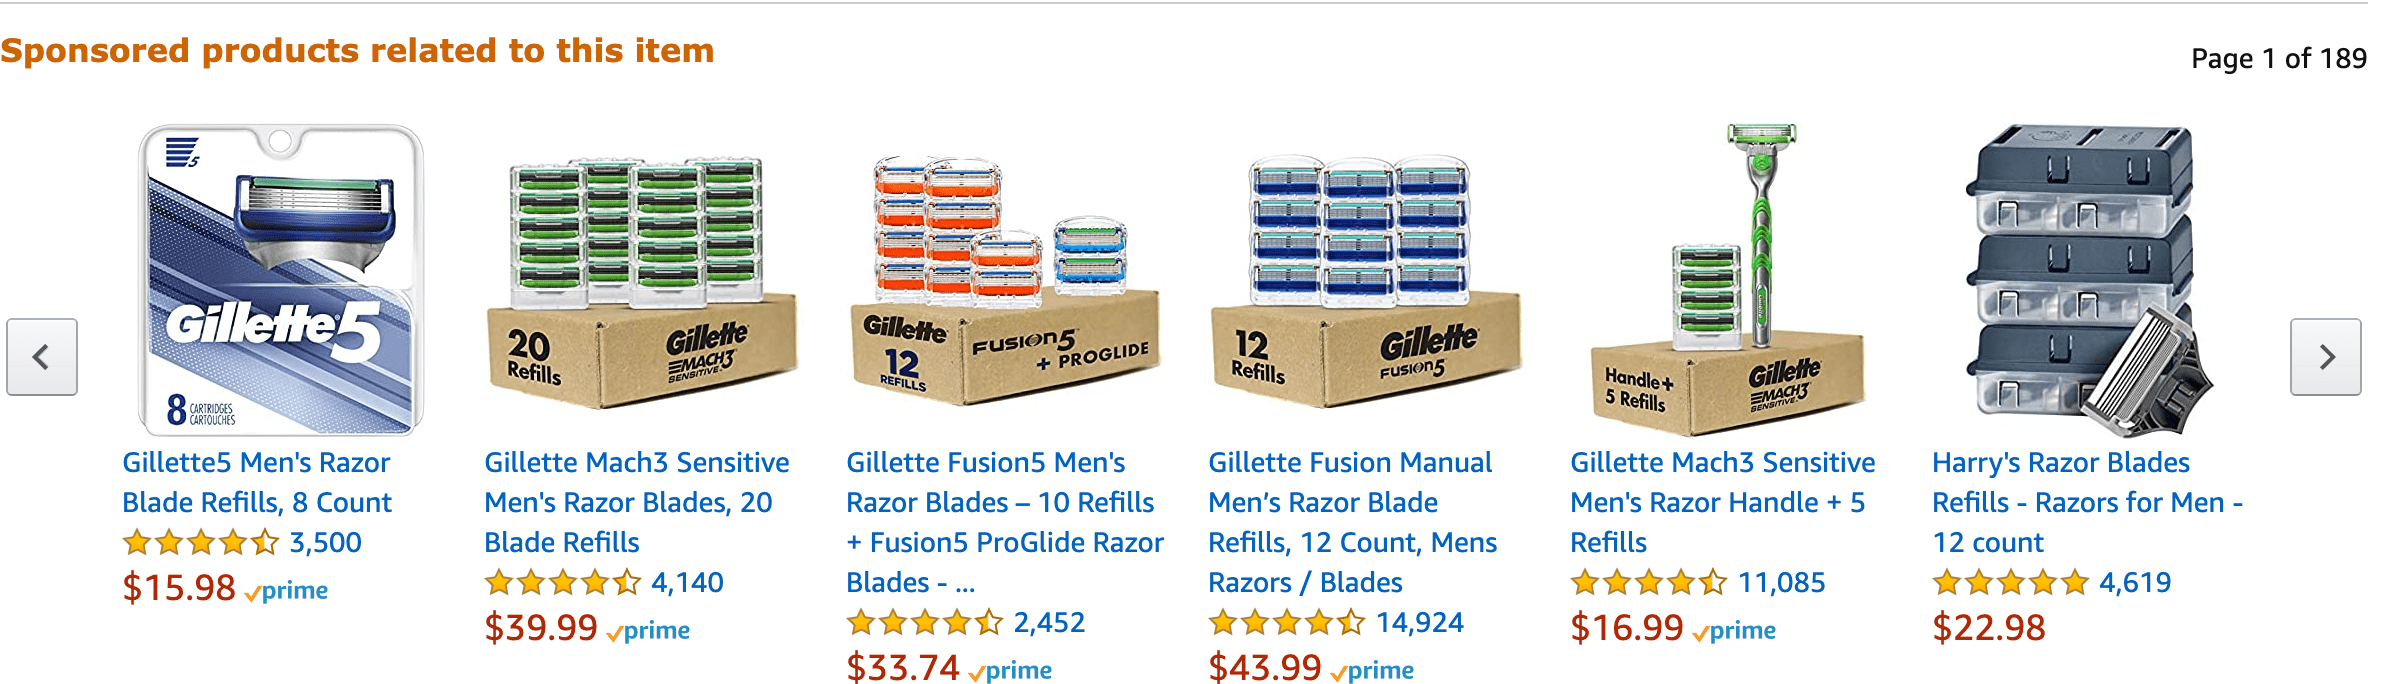 sponsored products related to razors on amazon